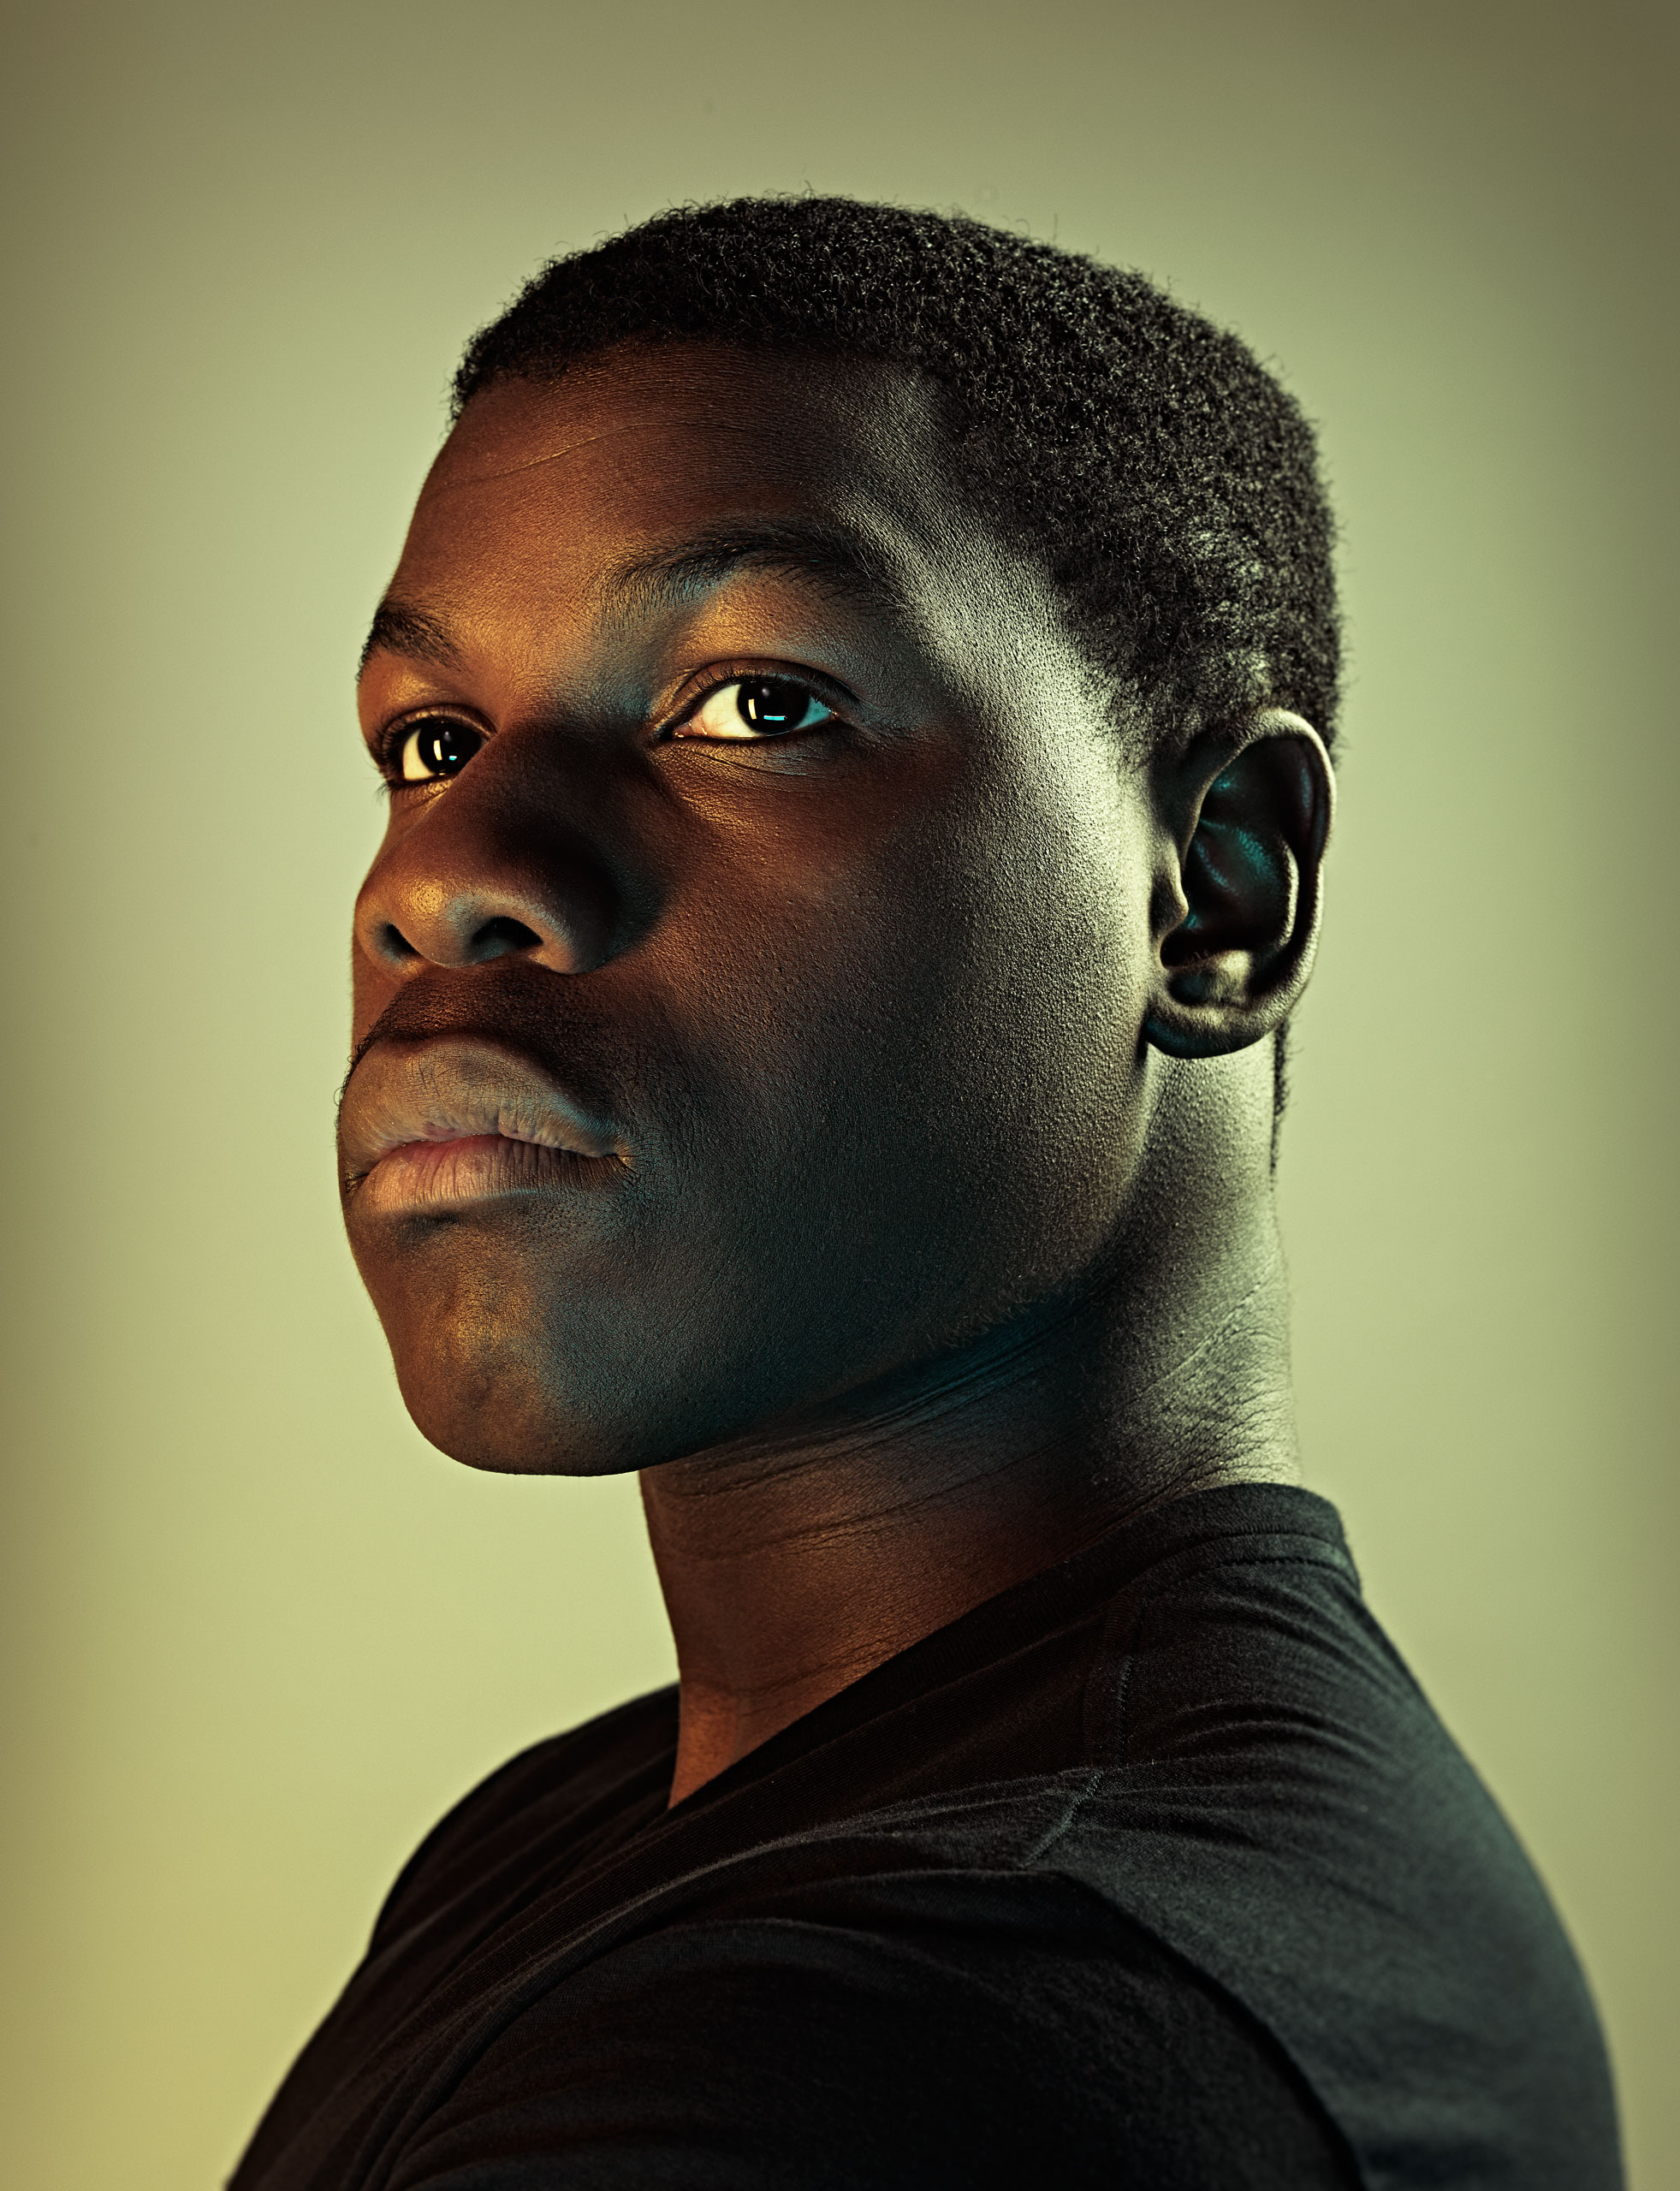 John Boyega photographed for TIME on October 26, 2015 in Los Angeles.